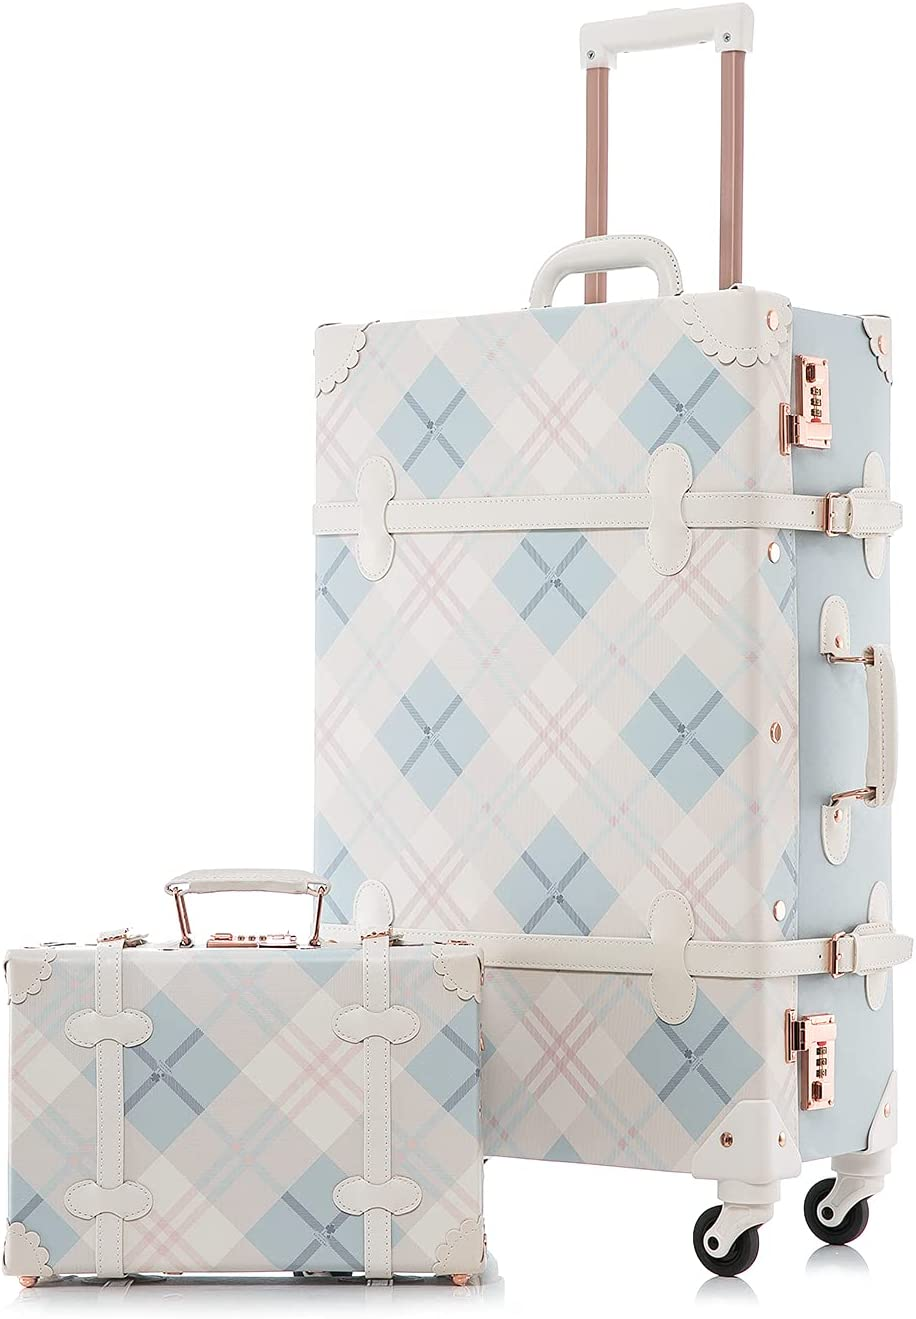 Unitravel Retro Luggage Sets 26 inch Suitcase Vintage Cute Women Max 56% OFF Max 81% OFF